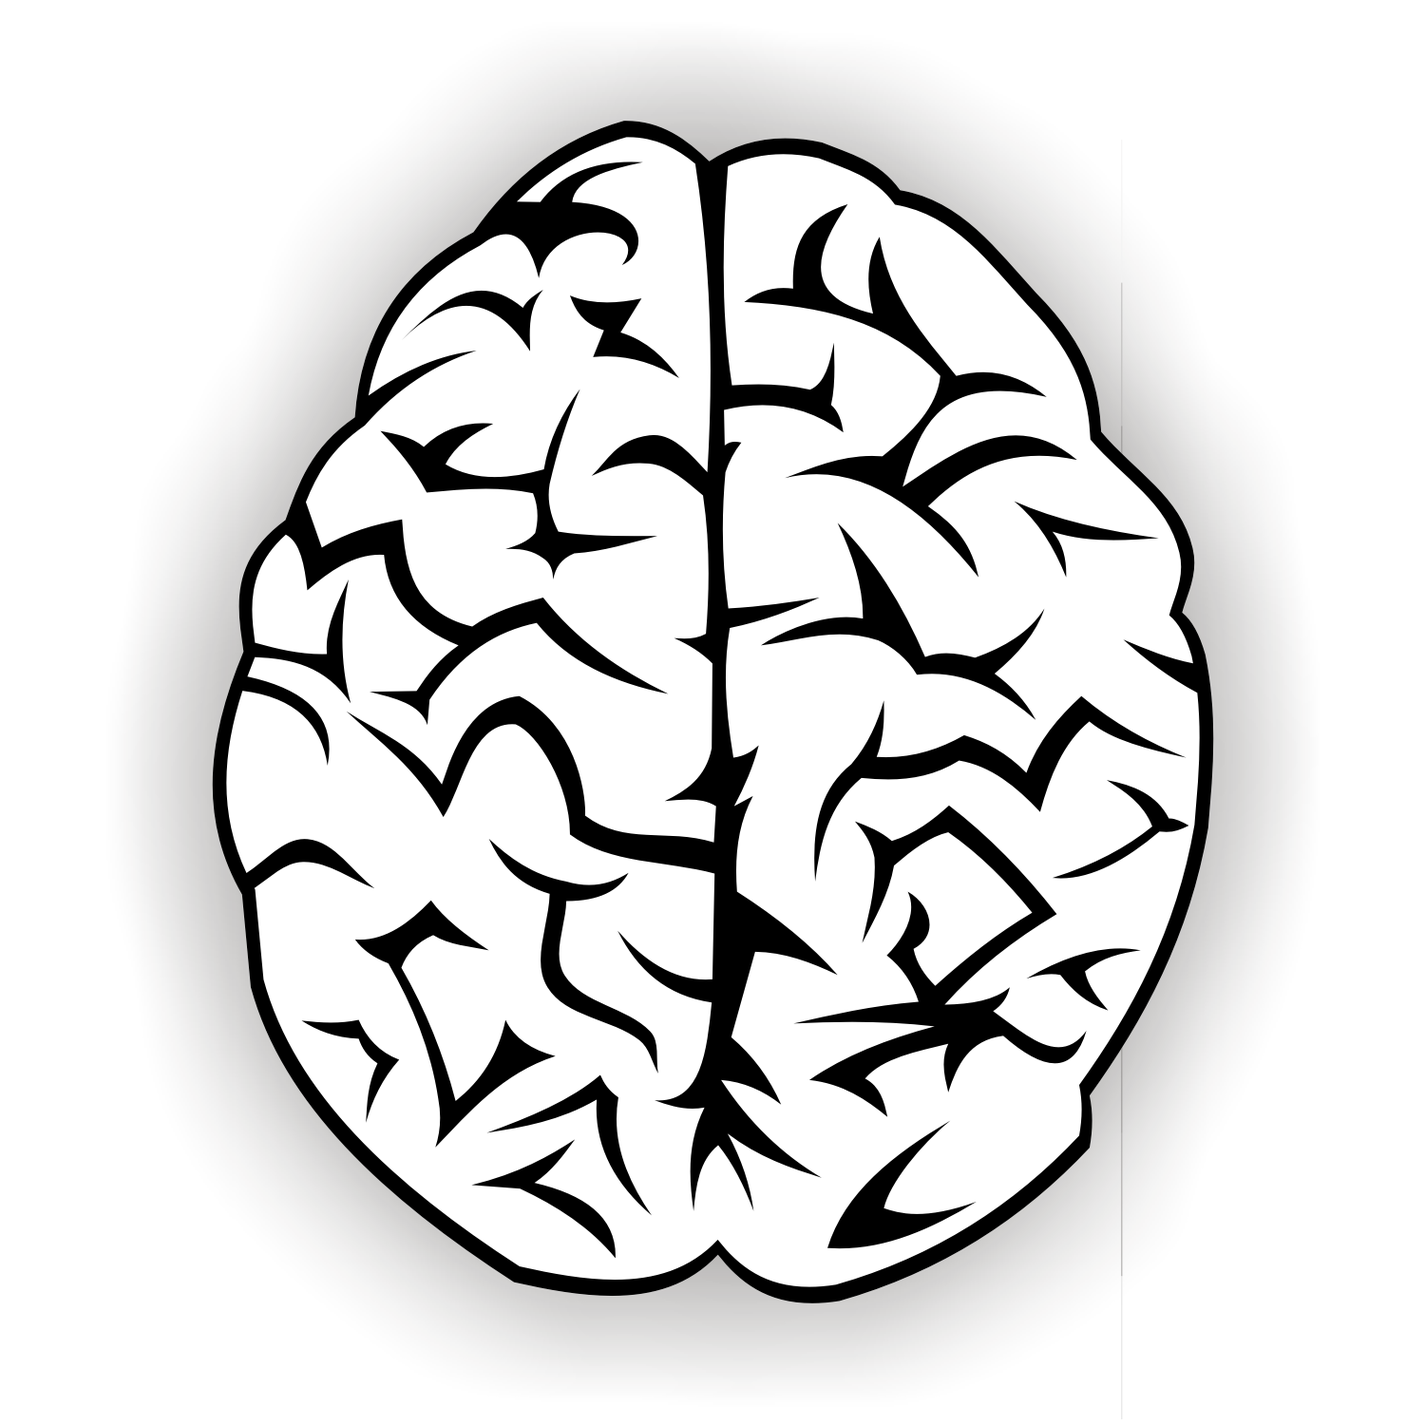 1425x1425 Drawing Of Brain Clipart Free To Use Clip Art Resource